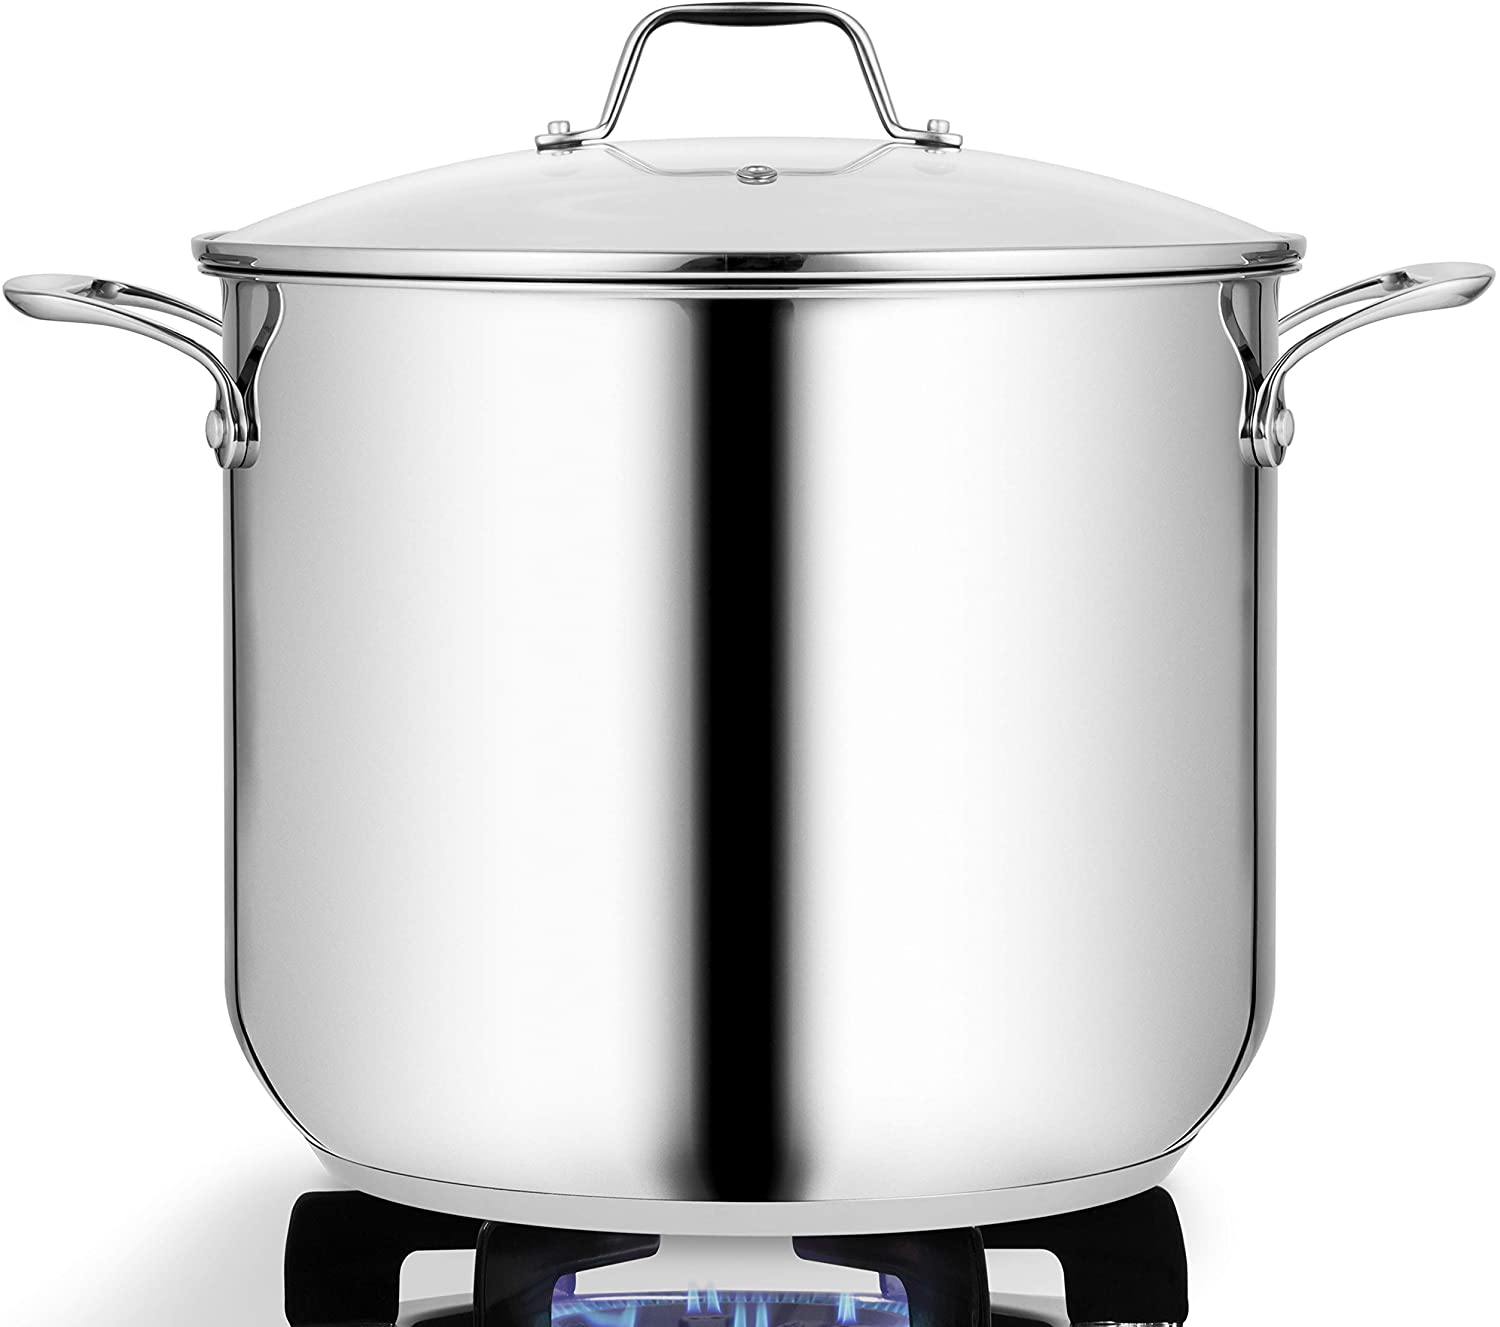 19-Quart Stainless Steel Stock Pot - 18/8 Food Grade Stainless Steel Heavy Duty Induction Large Stock Pot, Stew Pot, Simmering Pot, Soup Pot with See Through Lid, Dishwasher Safe - NutriChef NCSP20